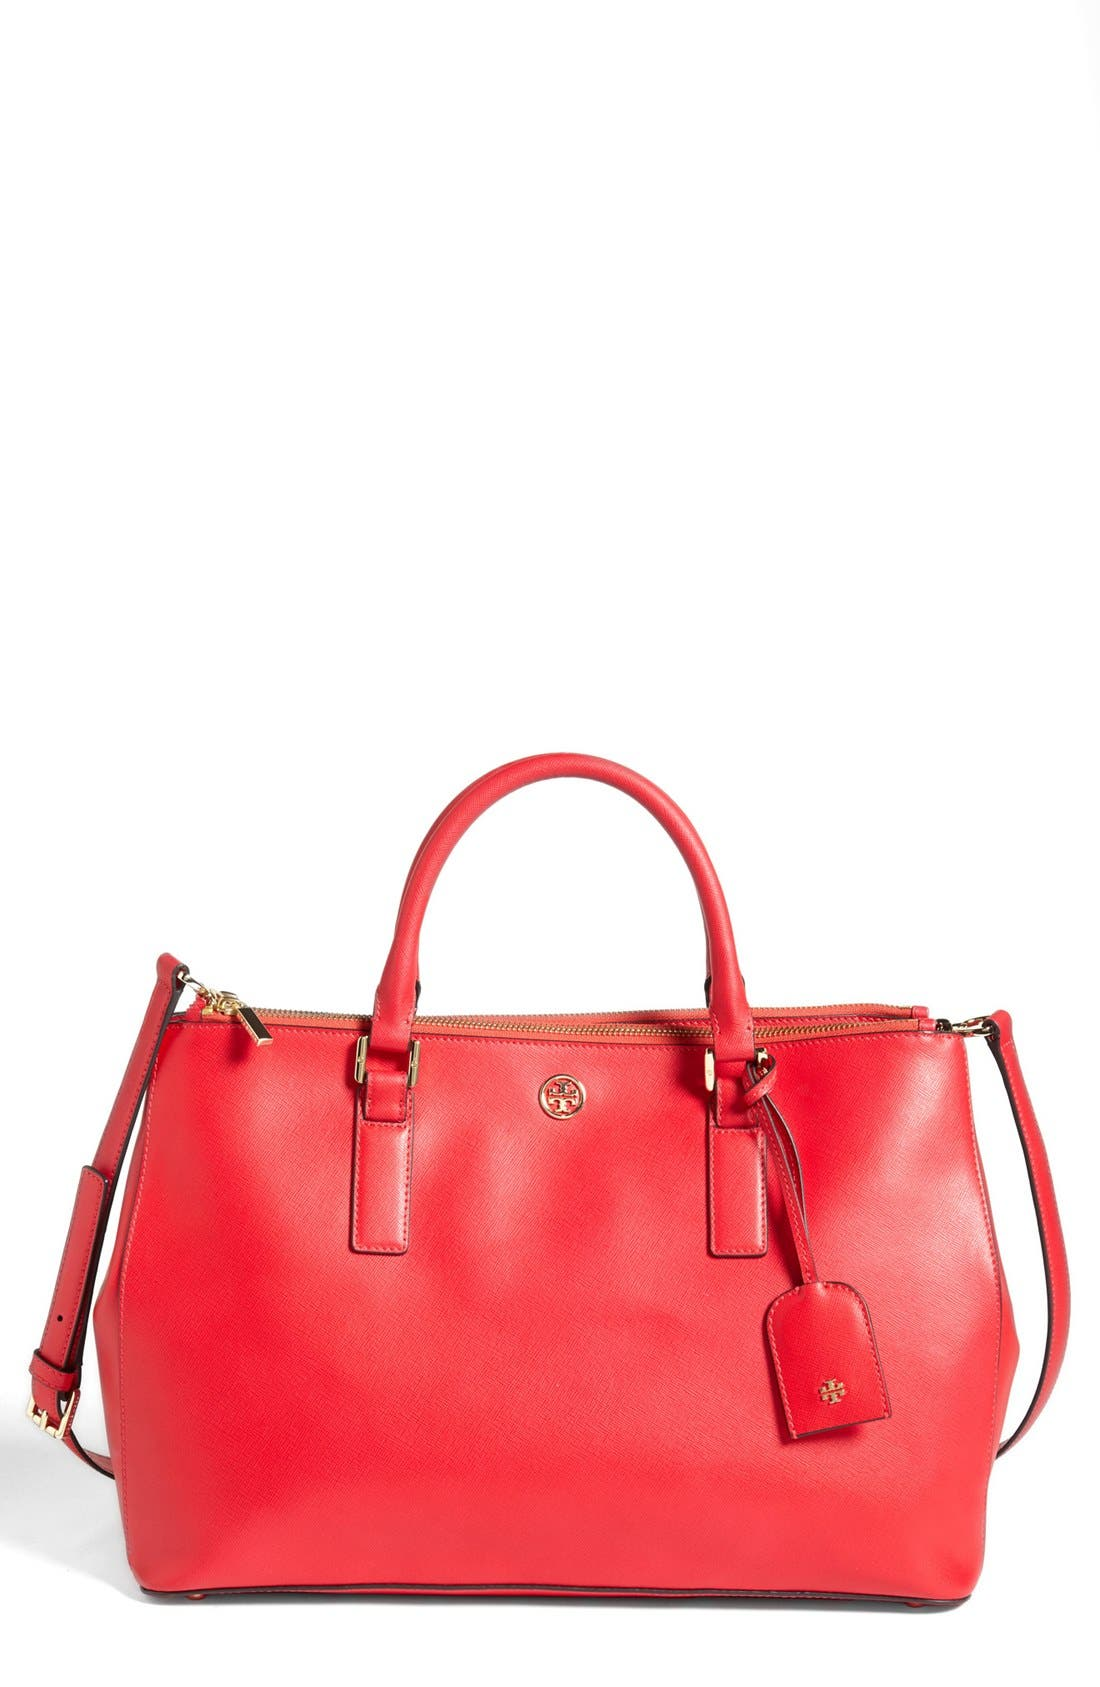 Alternate Image 1 Selected - Tory Burch 'Robinson - Double Zip' Tote